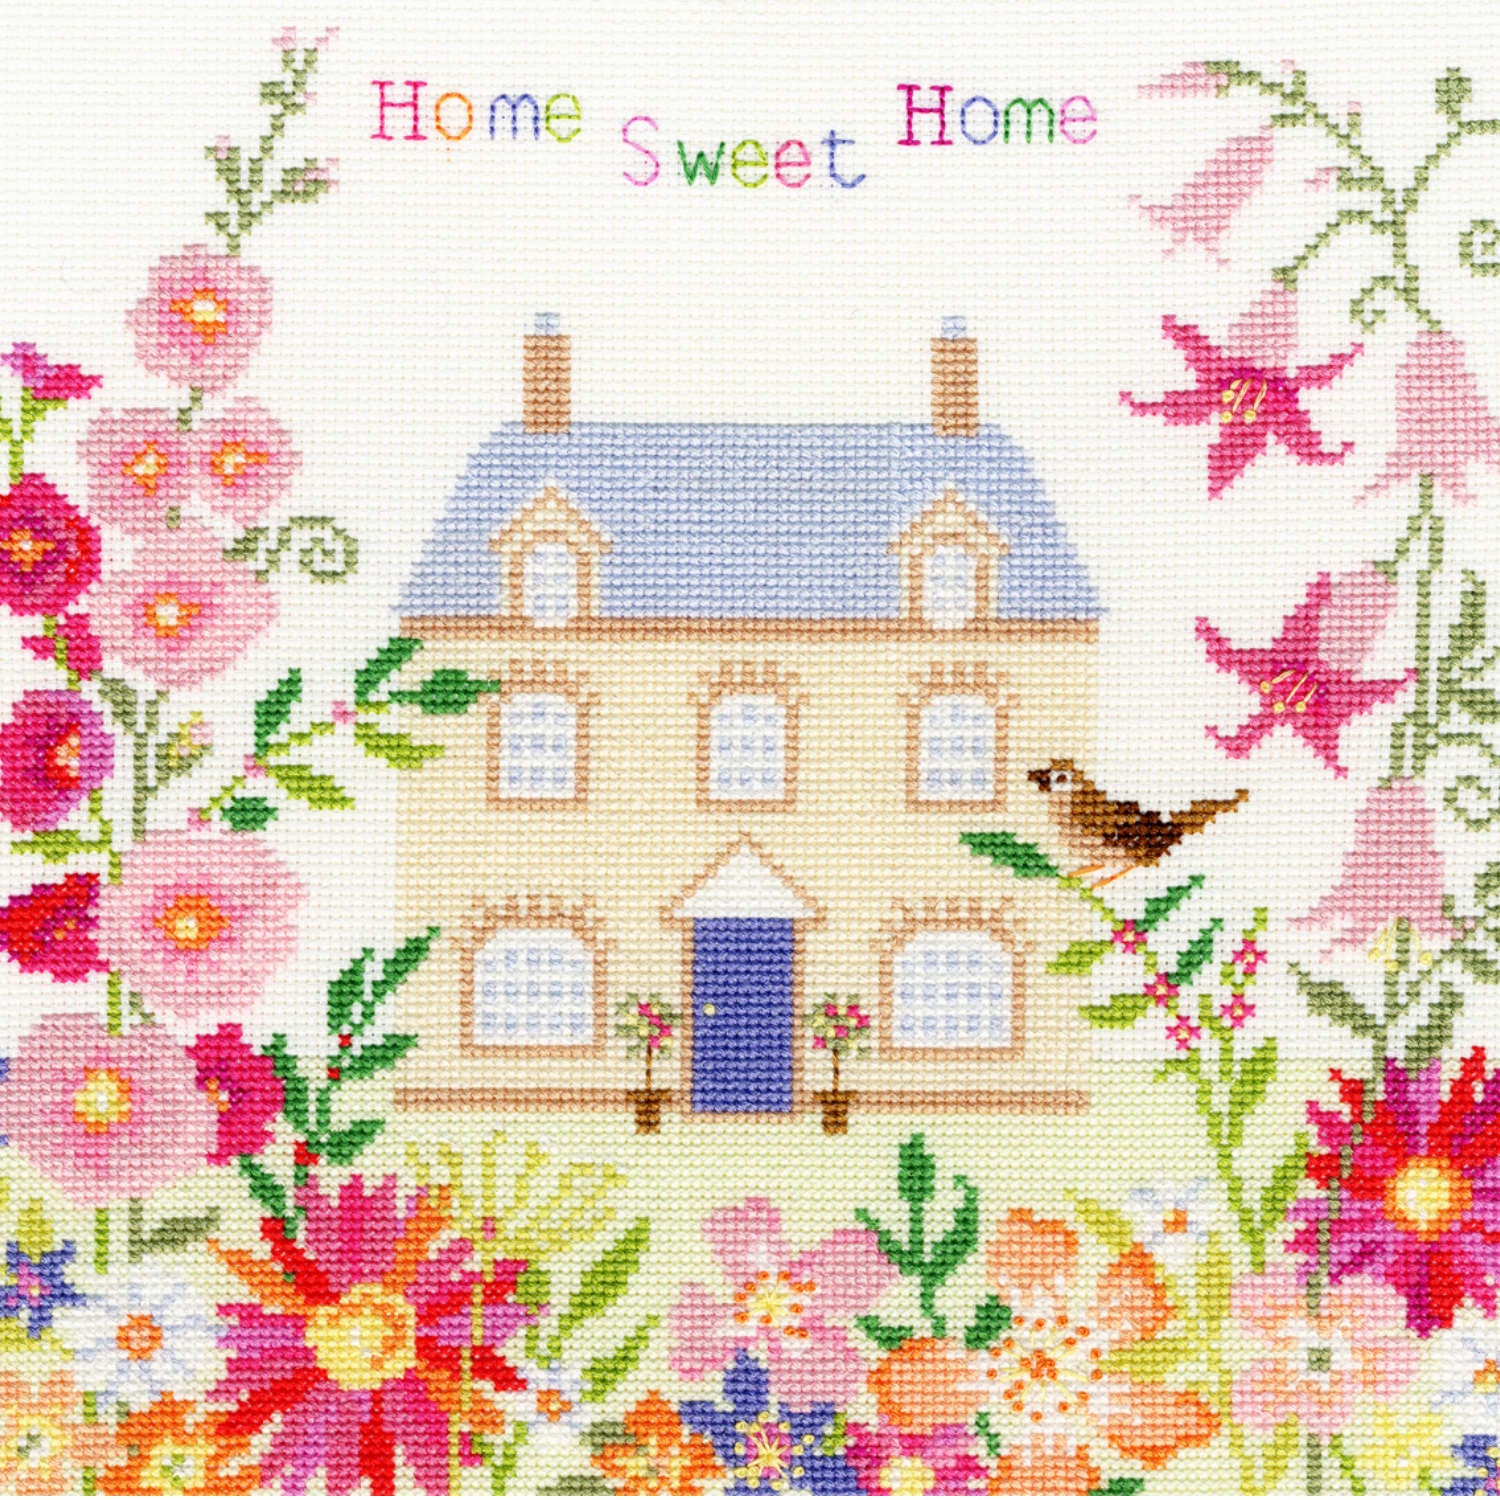 Home Sweet Home<br />Counted Cross Stitch Kit